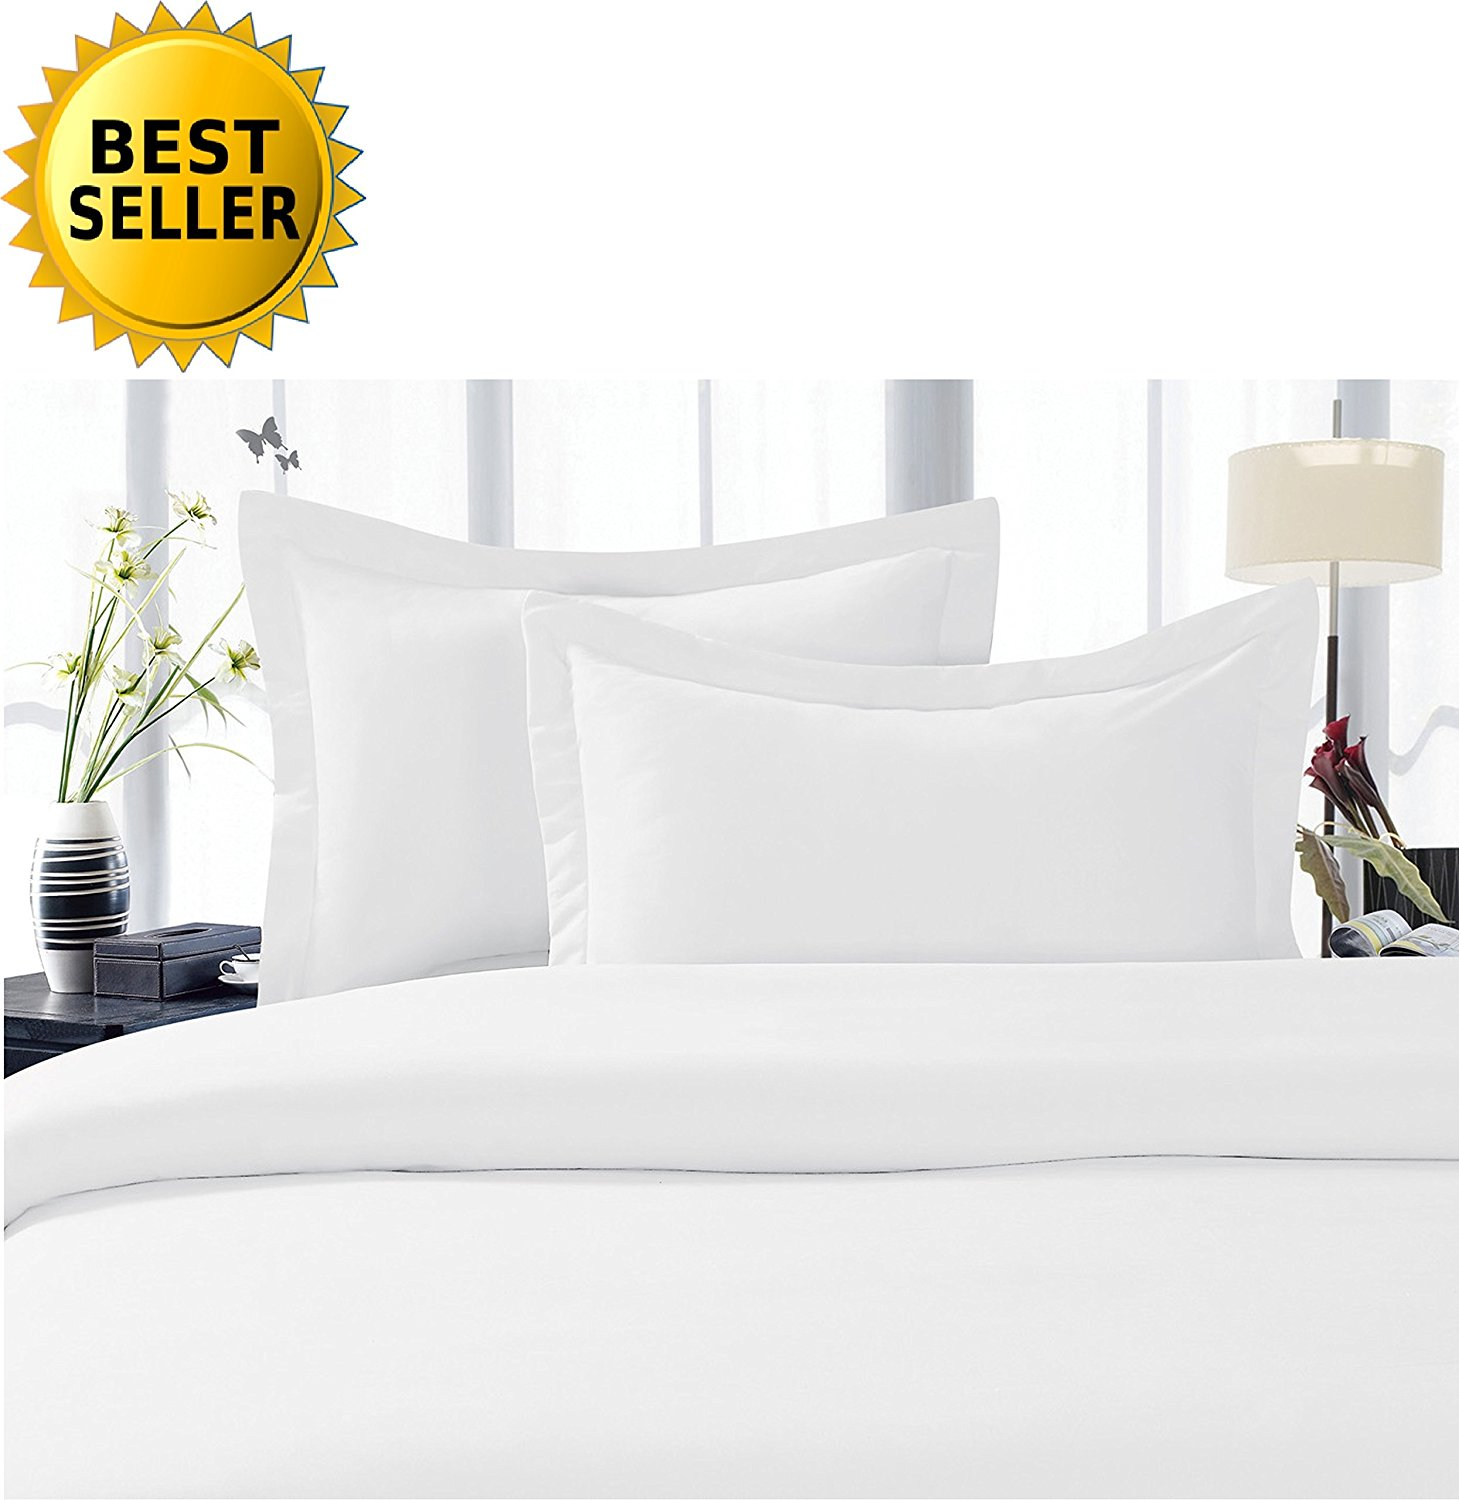 Celine Linen Best, Softest, Coziest Duvet Cover Ever! 1500 Thread Count Egyptian Quality Luxury Super Soft WRINKLE FREE 3-Piece Duvet Cover Set , Full/Queen, White